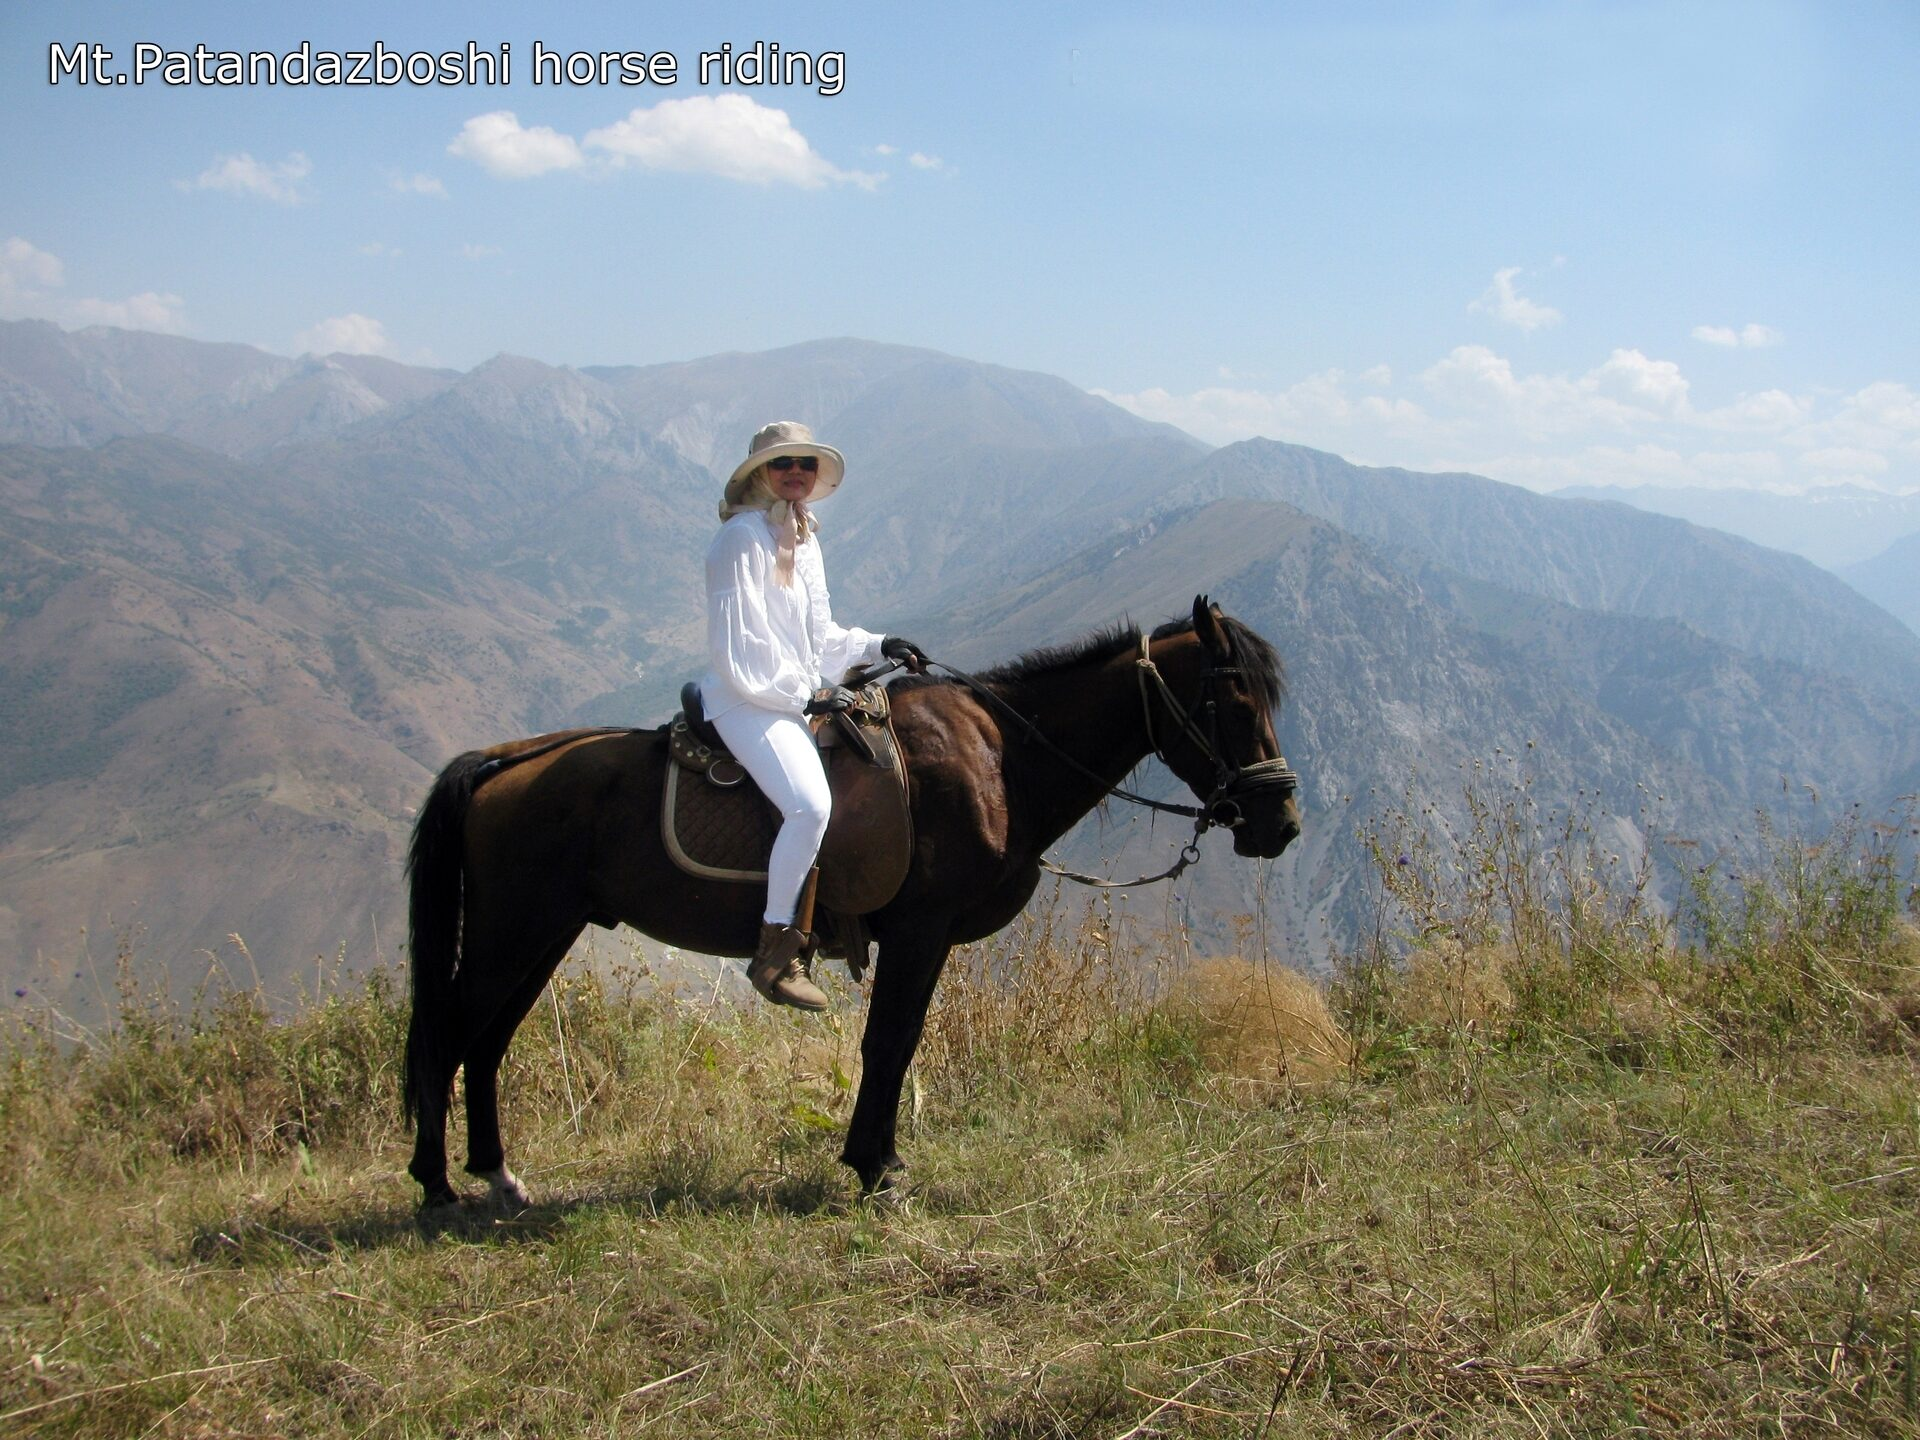 Uzbekistan horse riding in Ugam-Chatkal national park mountain Patandazboshi